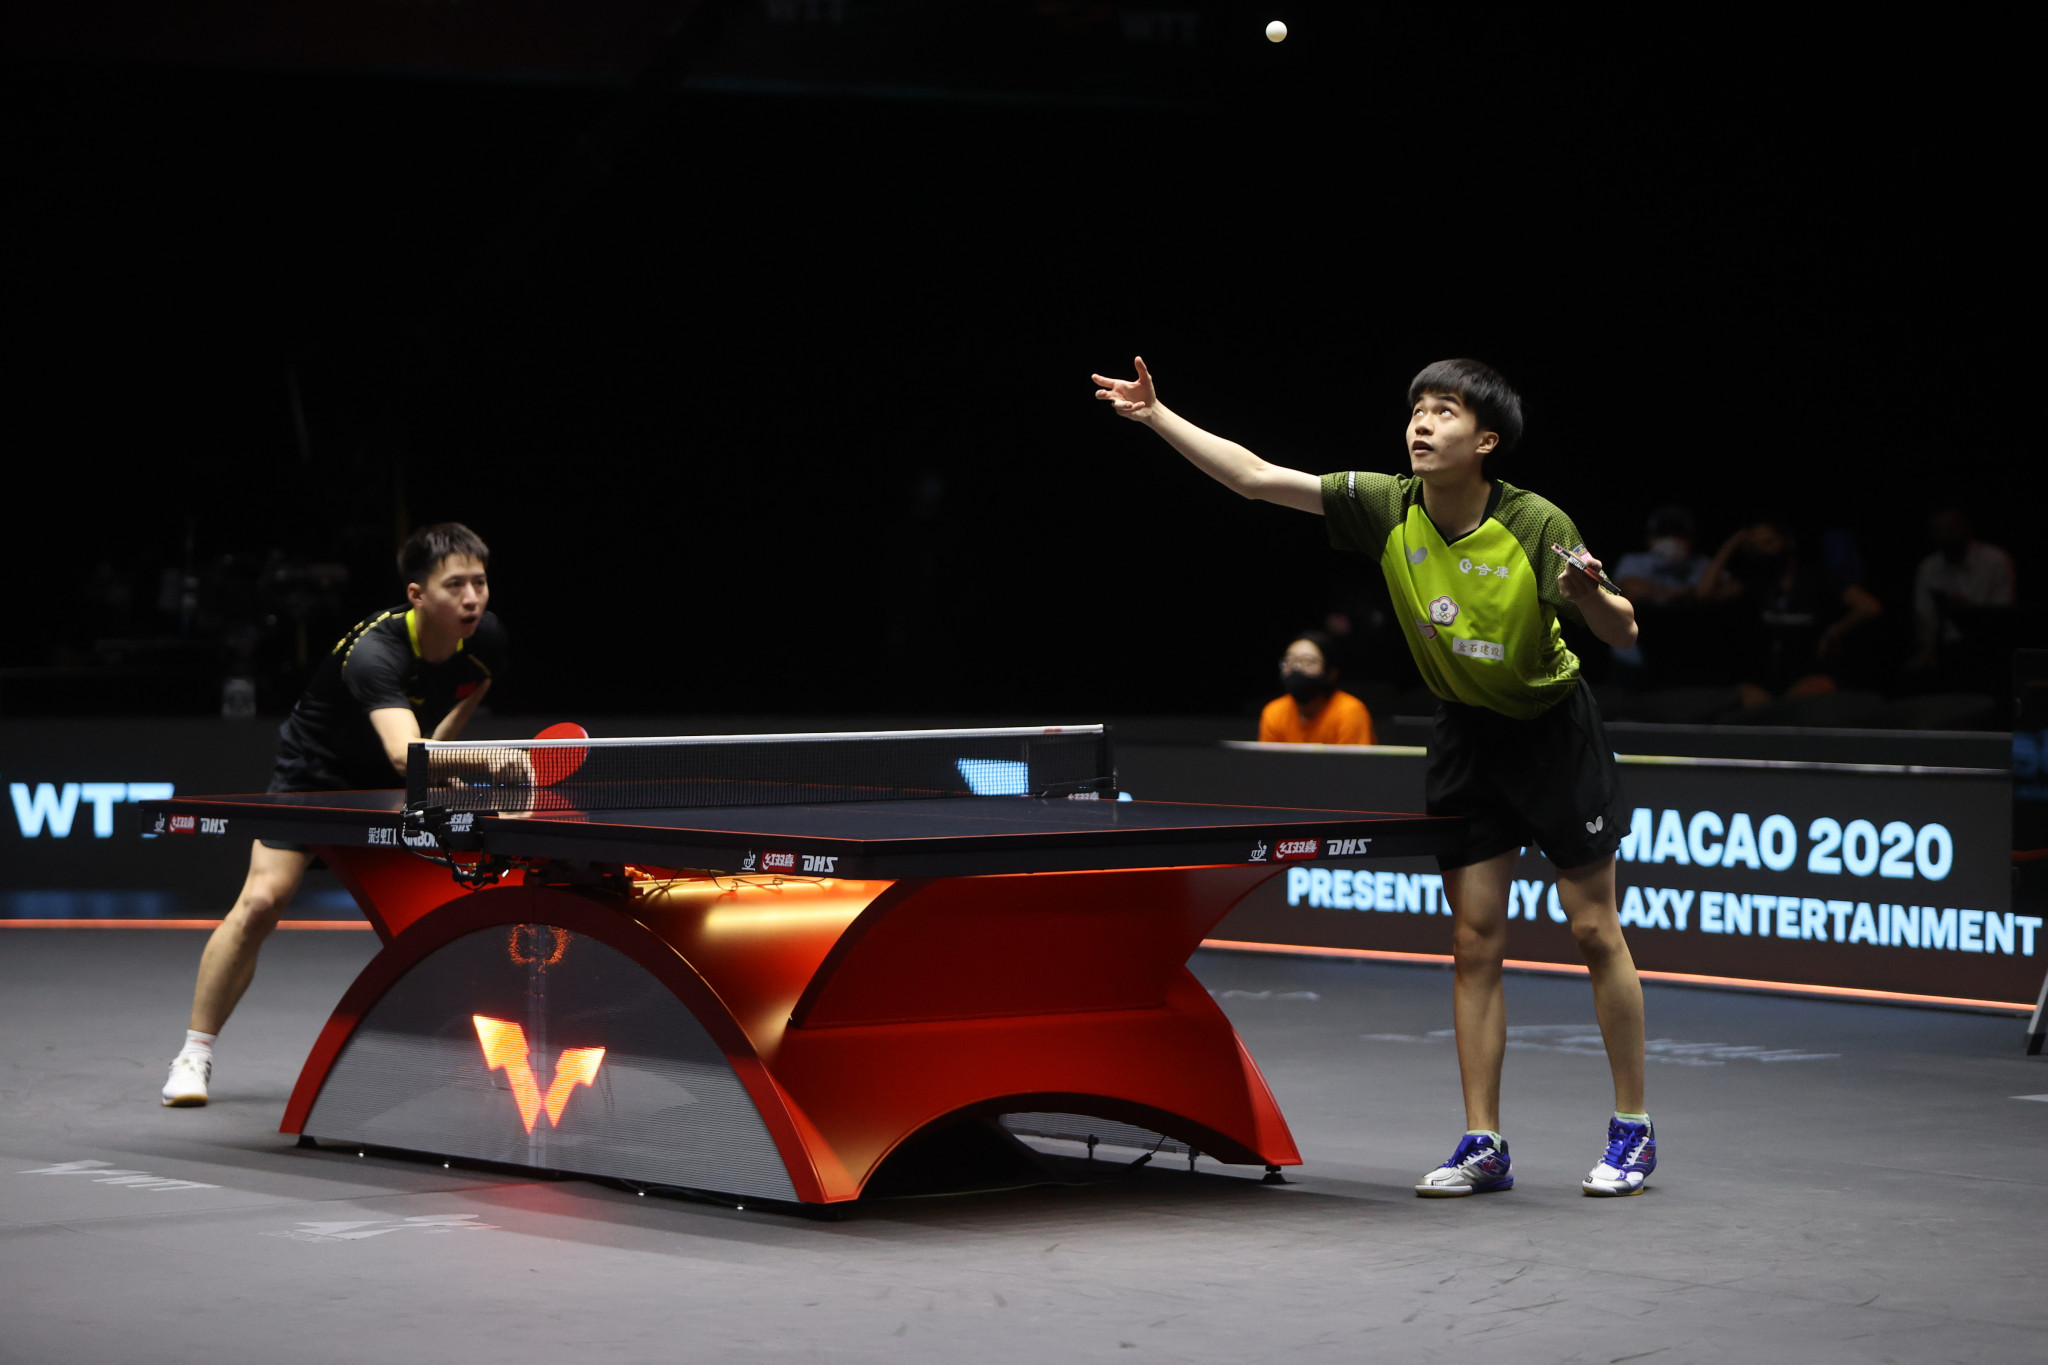 Lin suffers shock loss on day two of World Table Tennis Macao